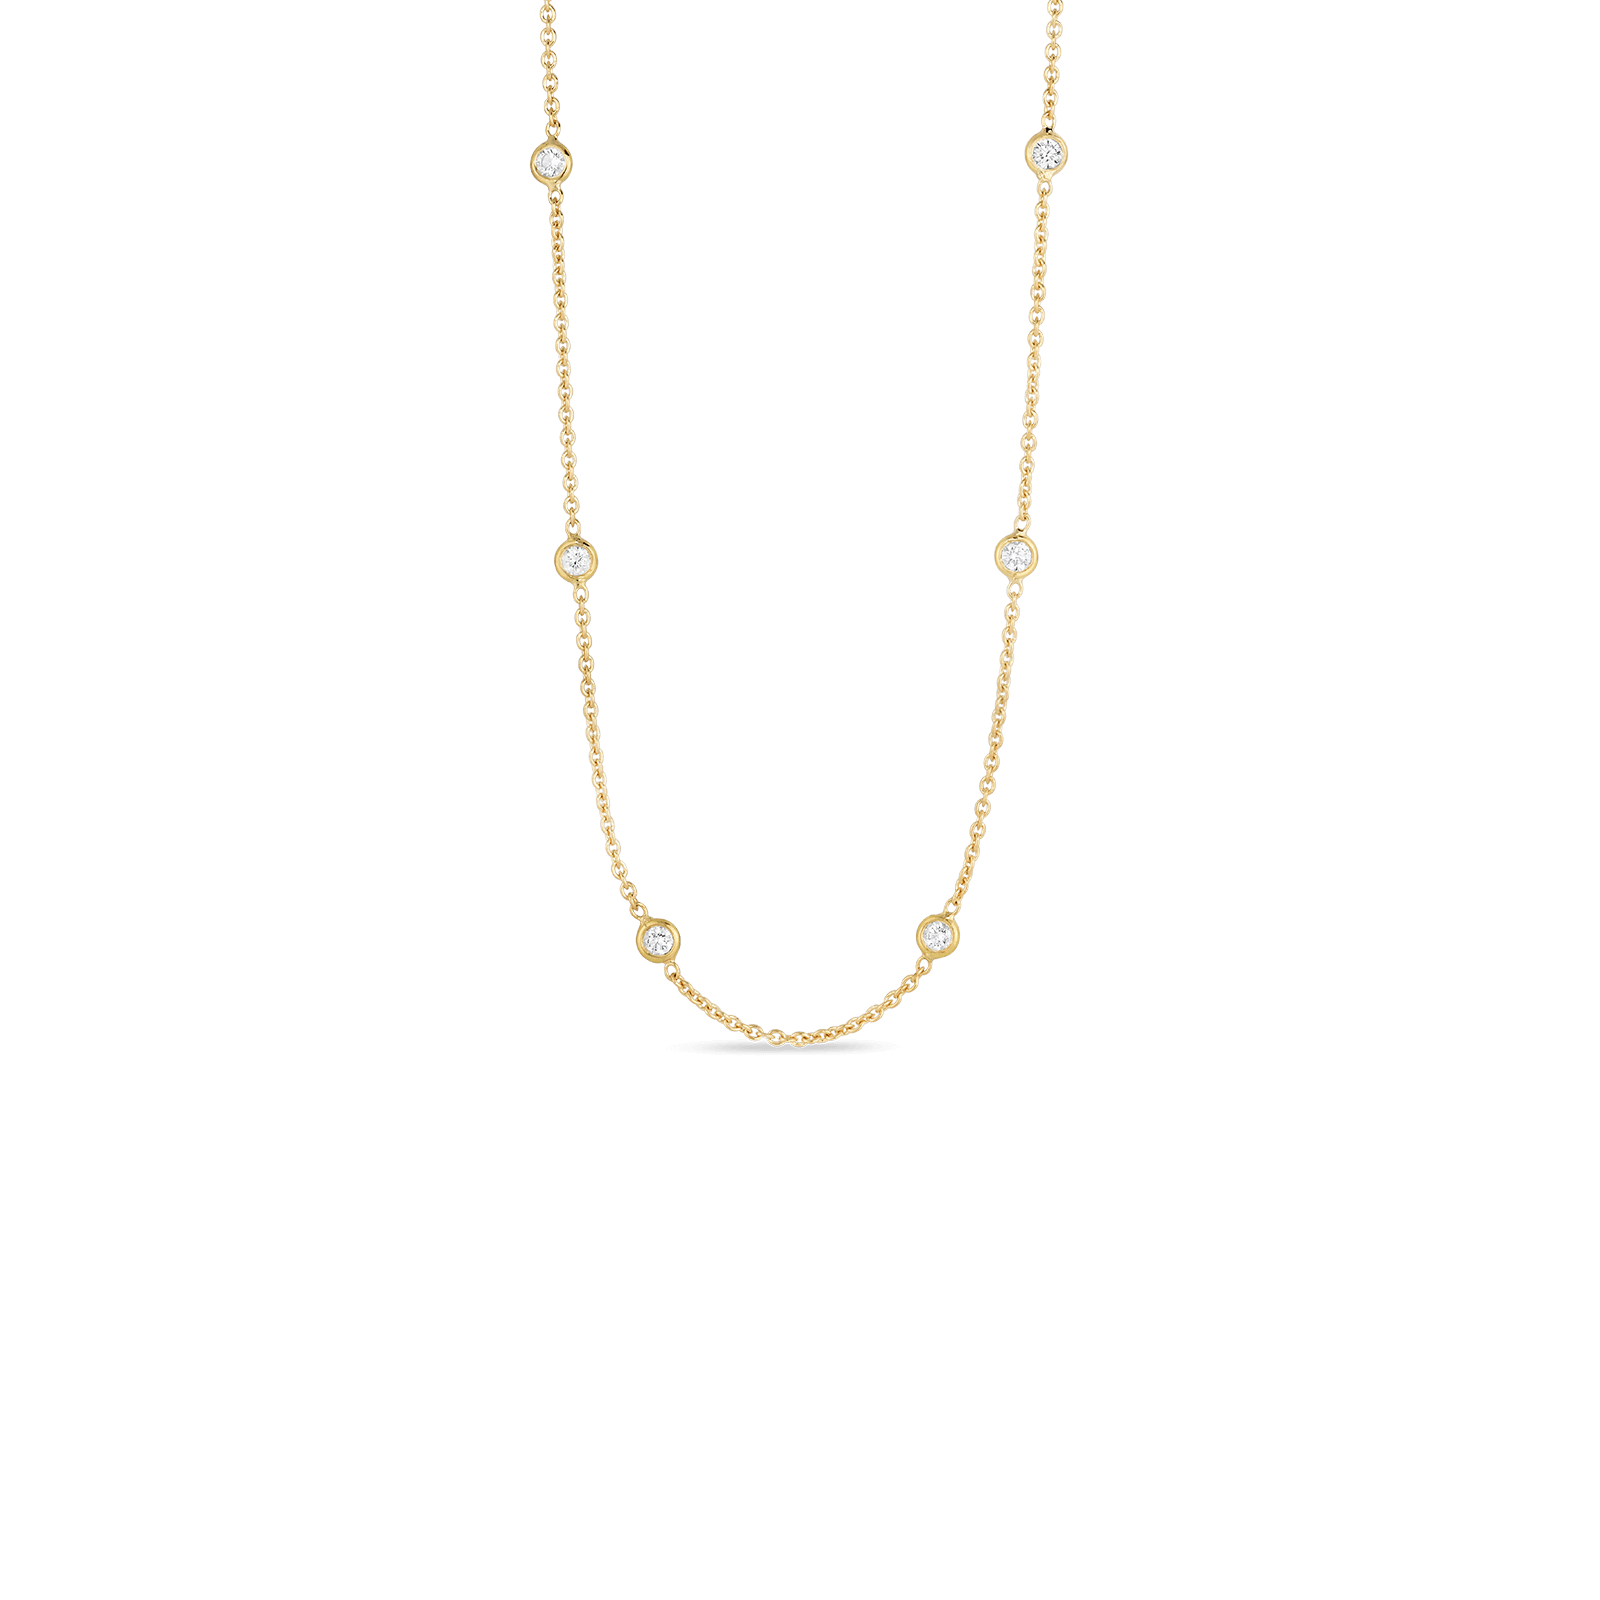 roberto necklace product with white diamond coin stations gold